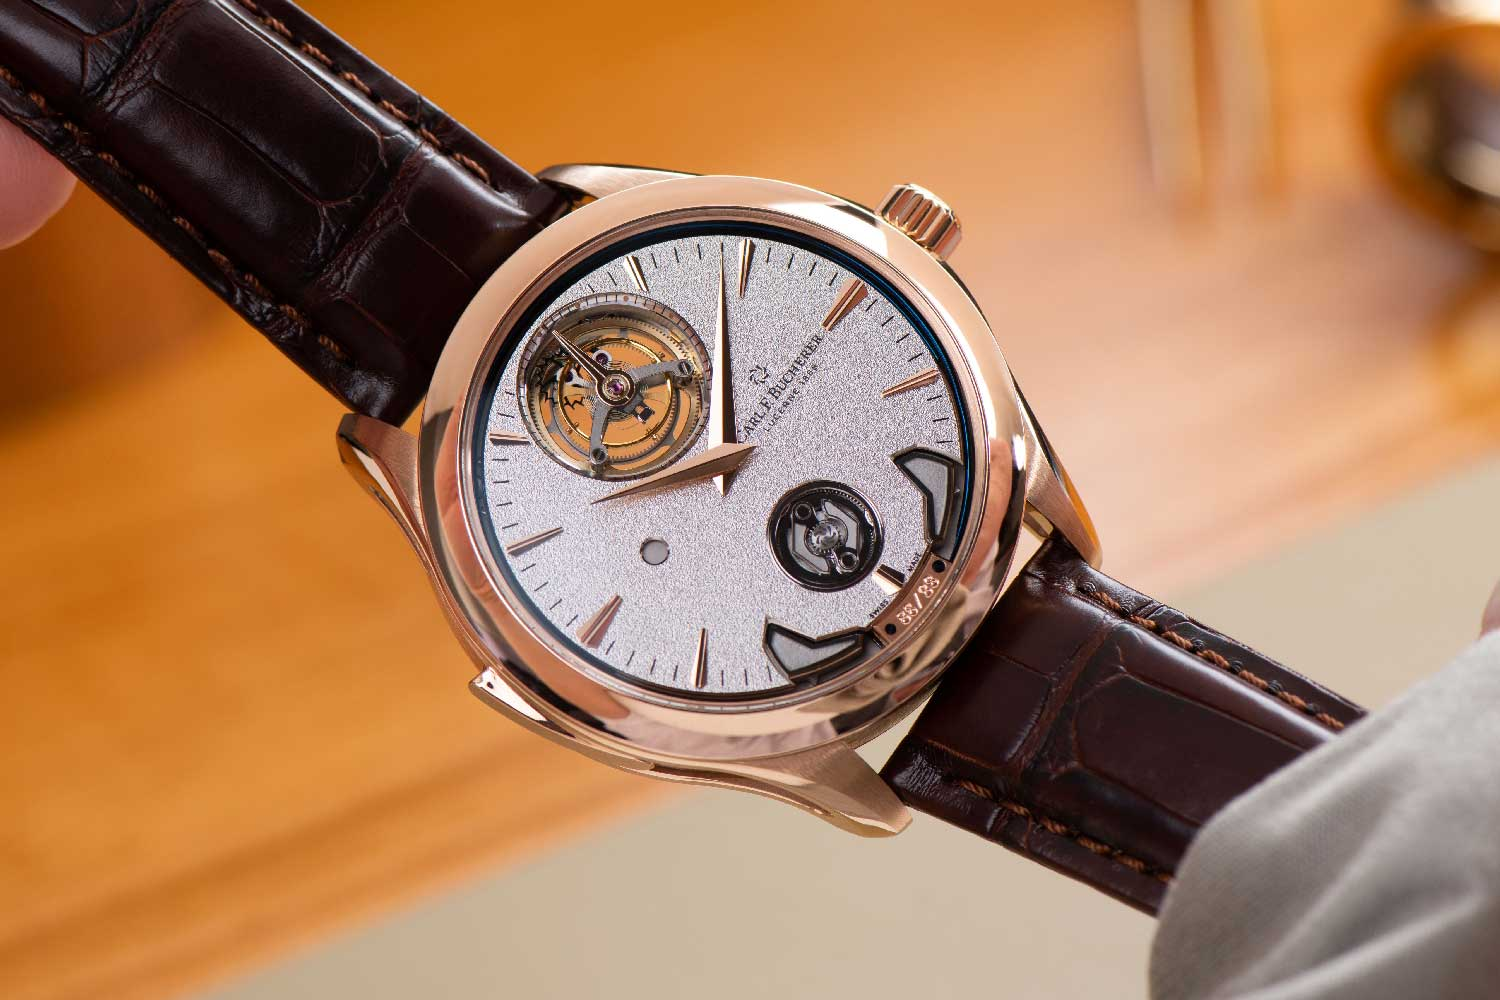 """Introduced at Watches and Wonders 2021, the Manero Minute Repeater Symphony boasts not only Carl F. Bucherer's Peripheral Winding System and floating Peripheral Tourbillon but also a third peripheral mechanism, for which the brand has christened the watch's COSC certified Calibre MR3000 """"Triple Peripheral""""."""